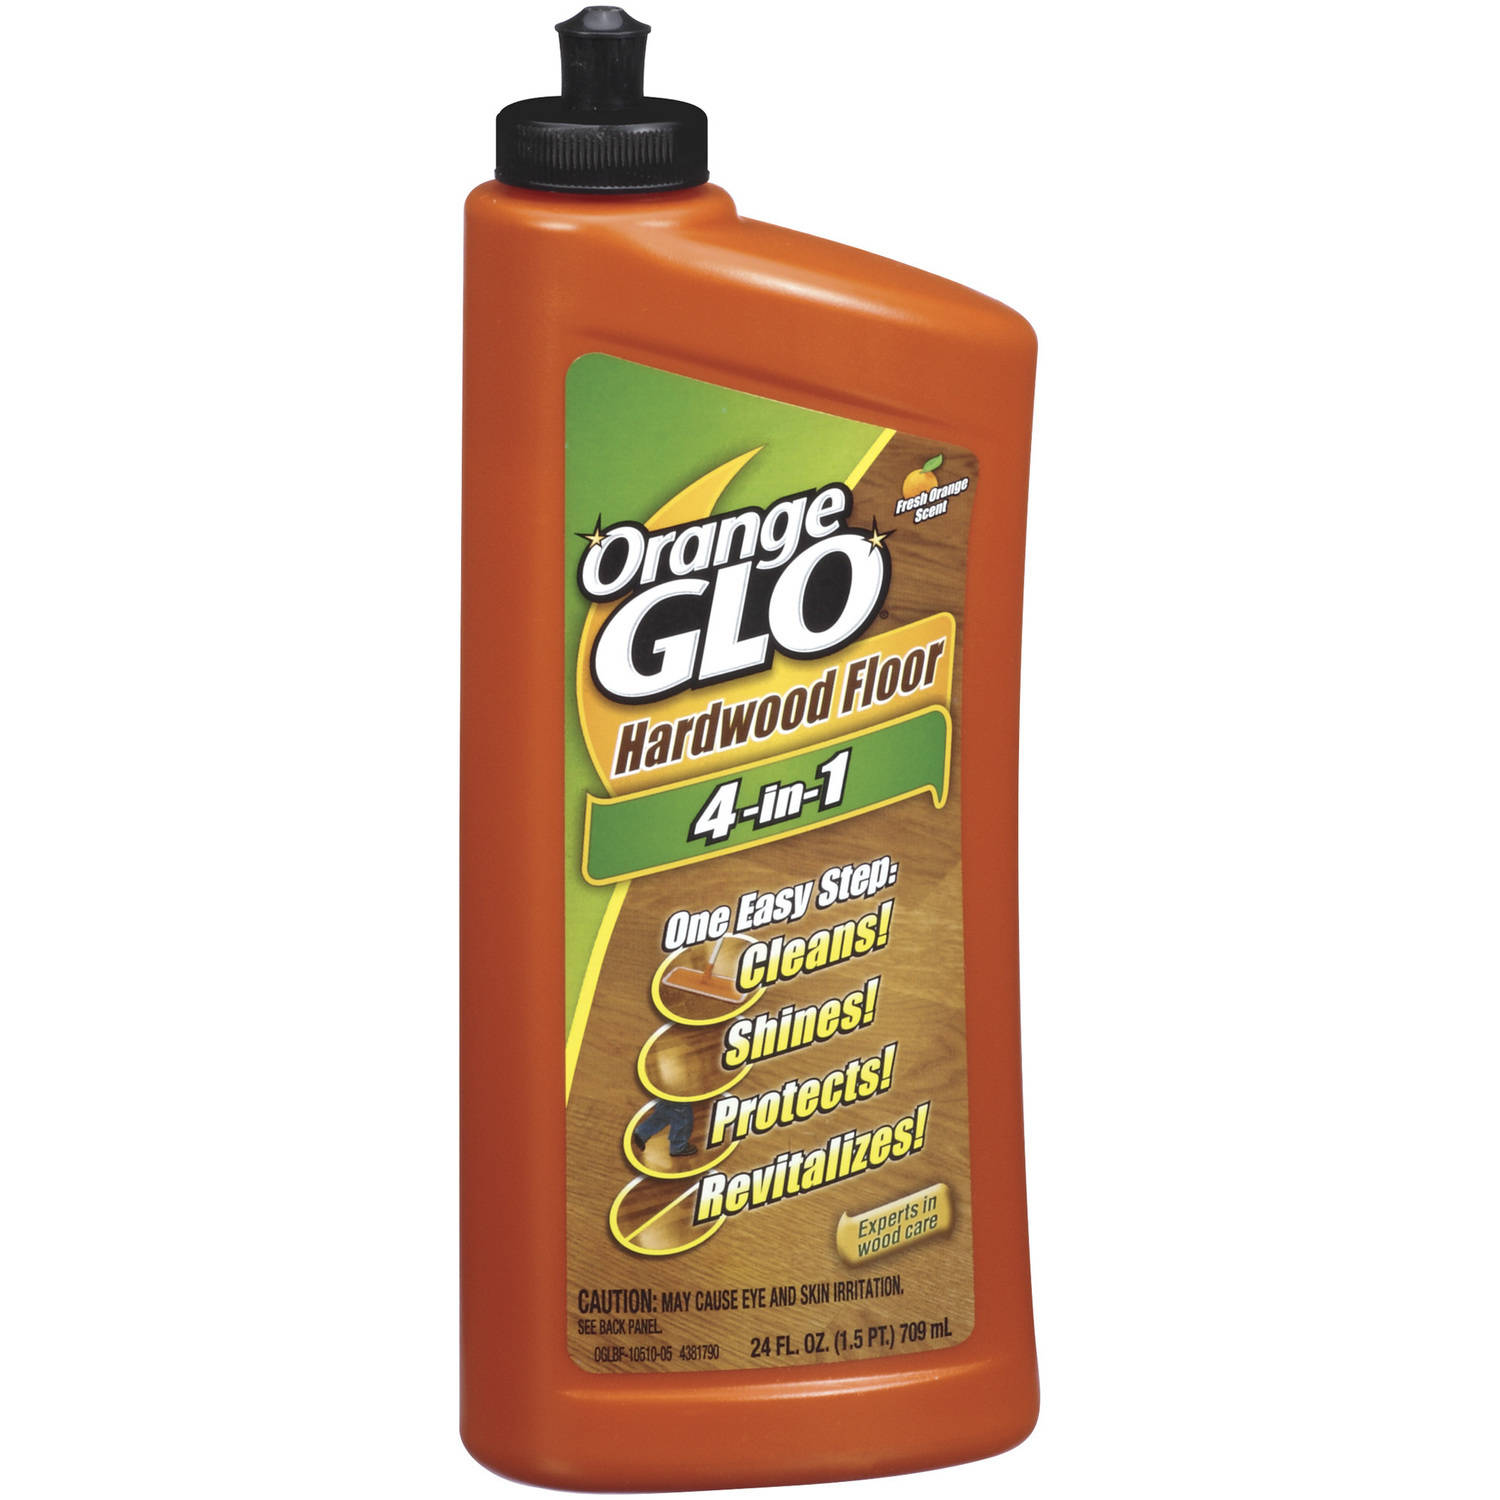 Orange Glo 4-In-1 Hardwood Floor Polish, 24 fl oz